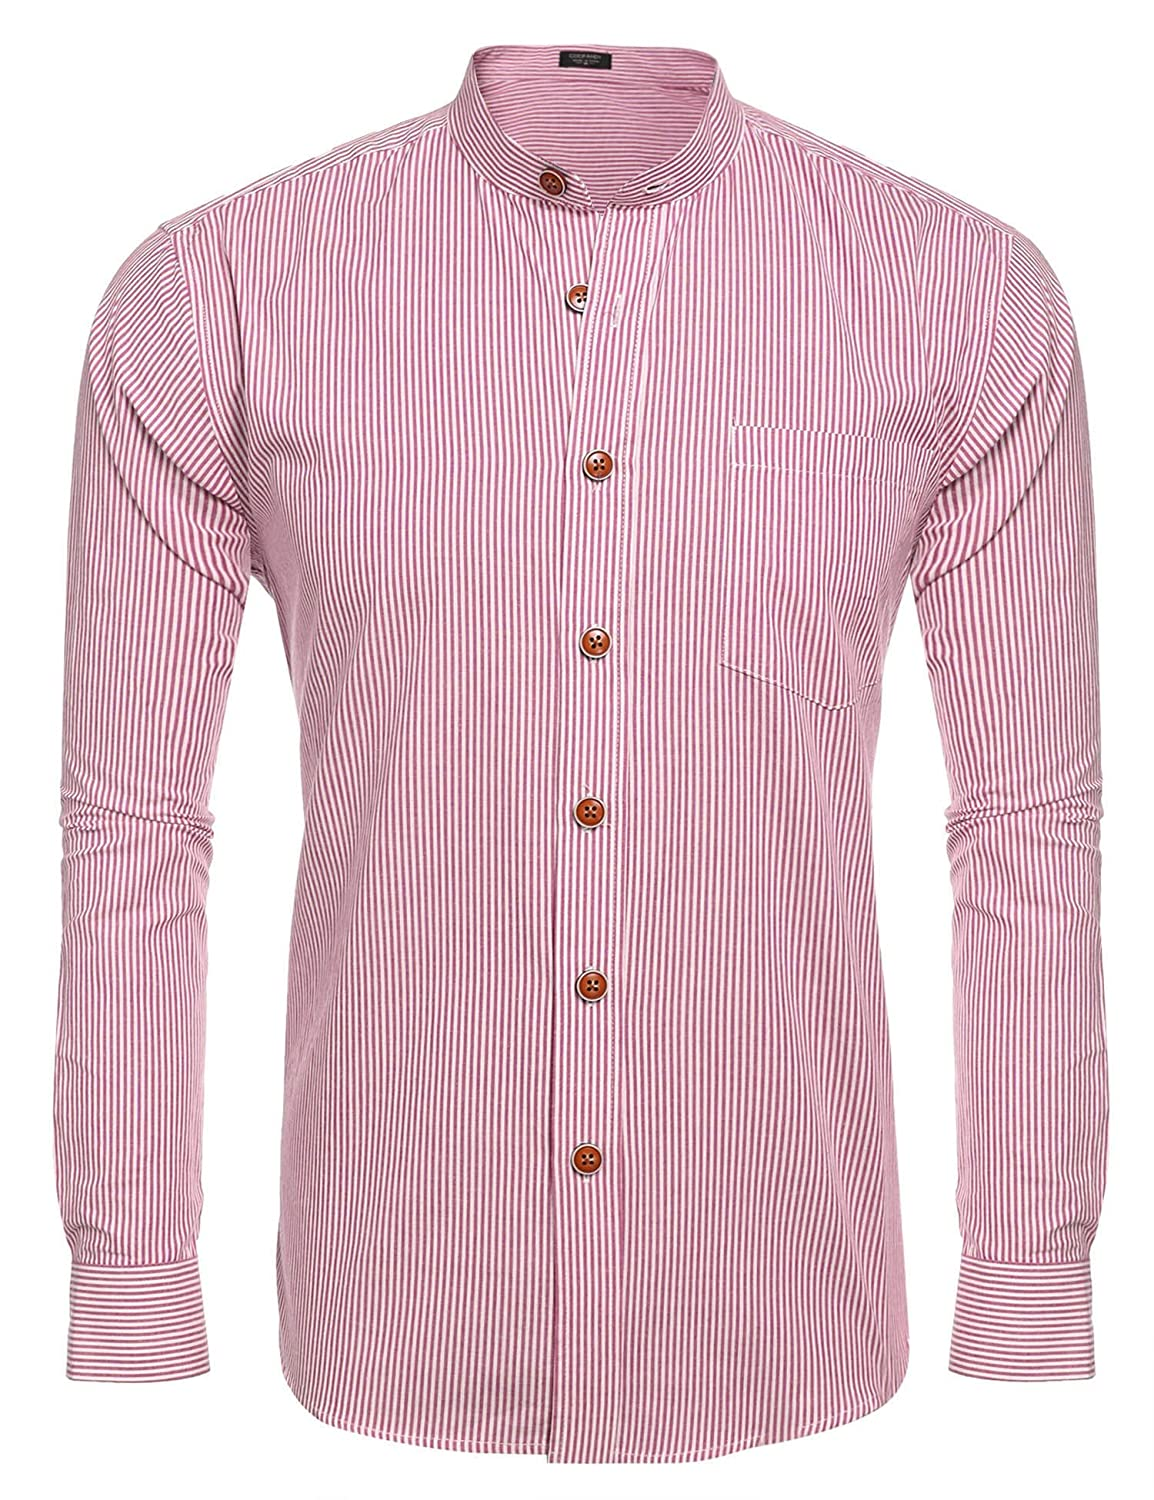 COOFANDY Men's Striped Slim Fit Banded Collar Shirt 16380810